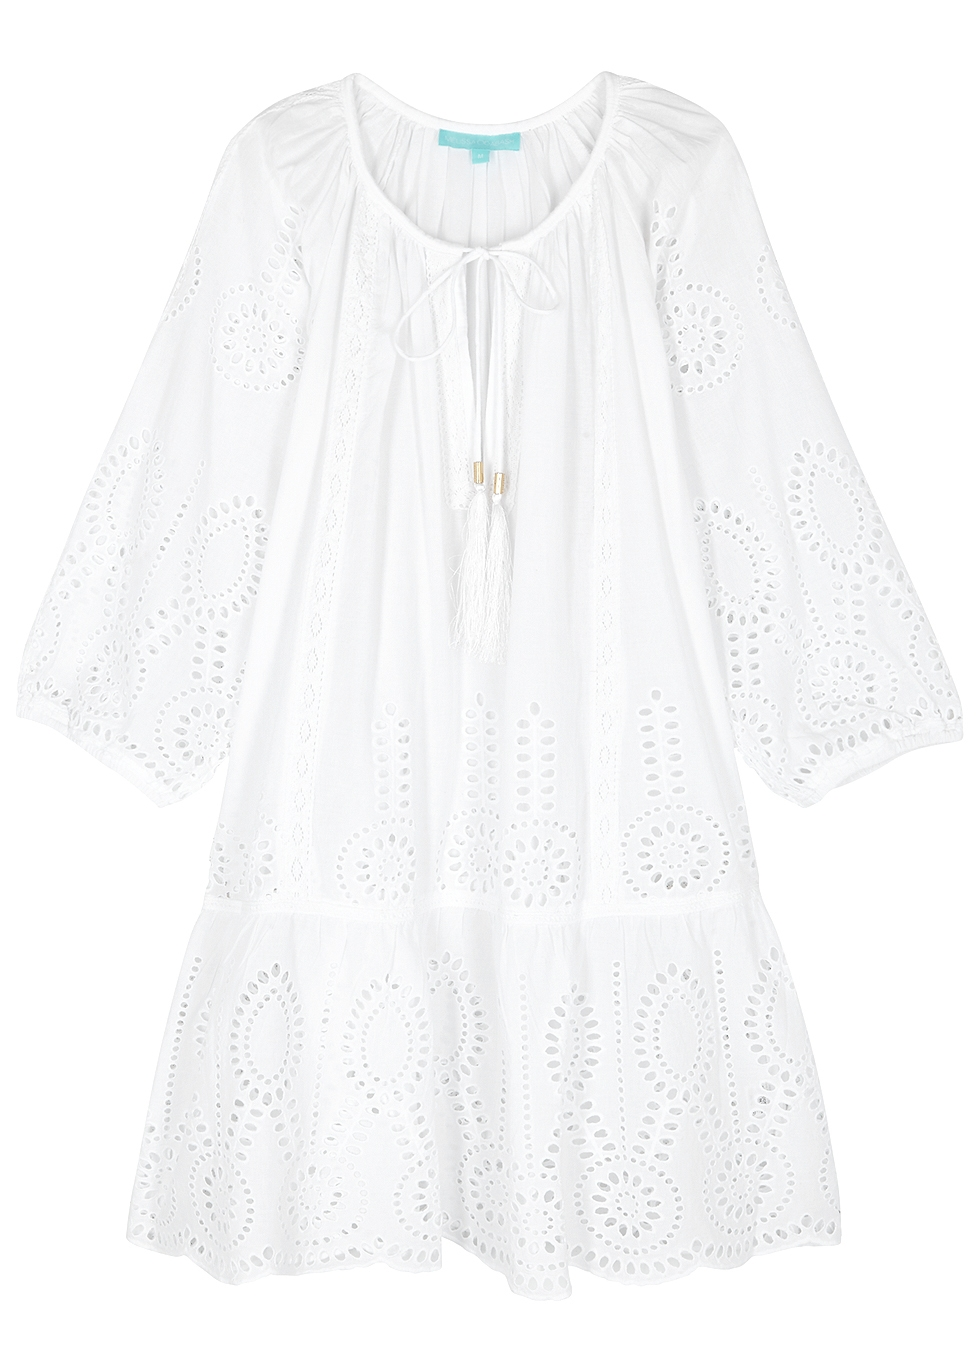 Ashley Eyelet-Embroidered Cotton Dress in White